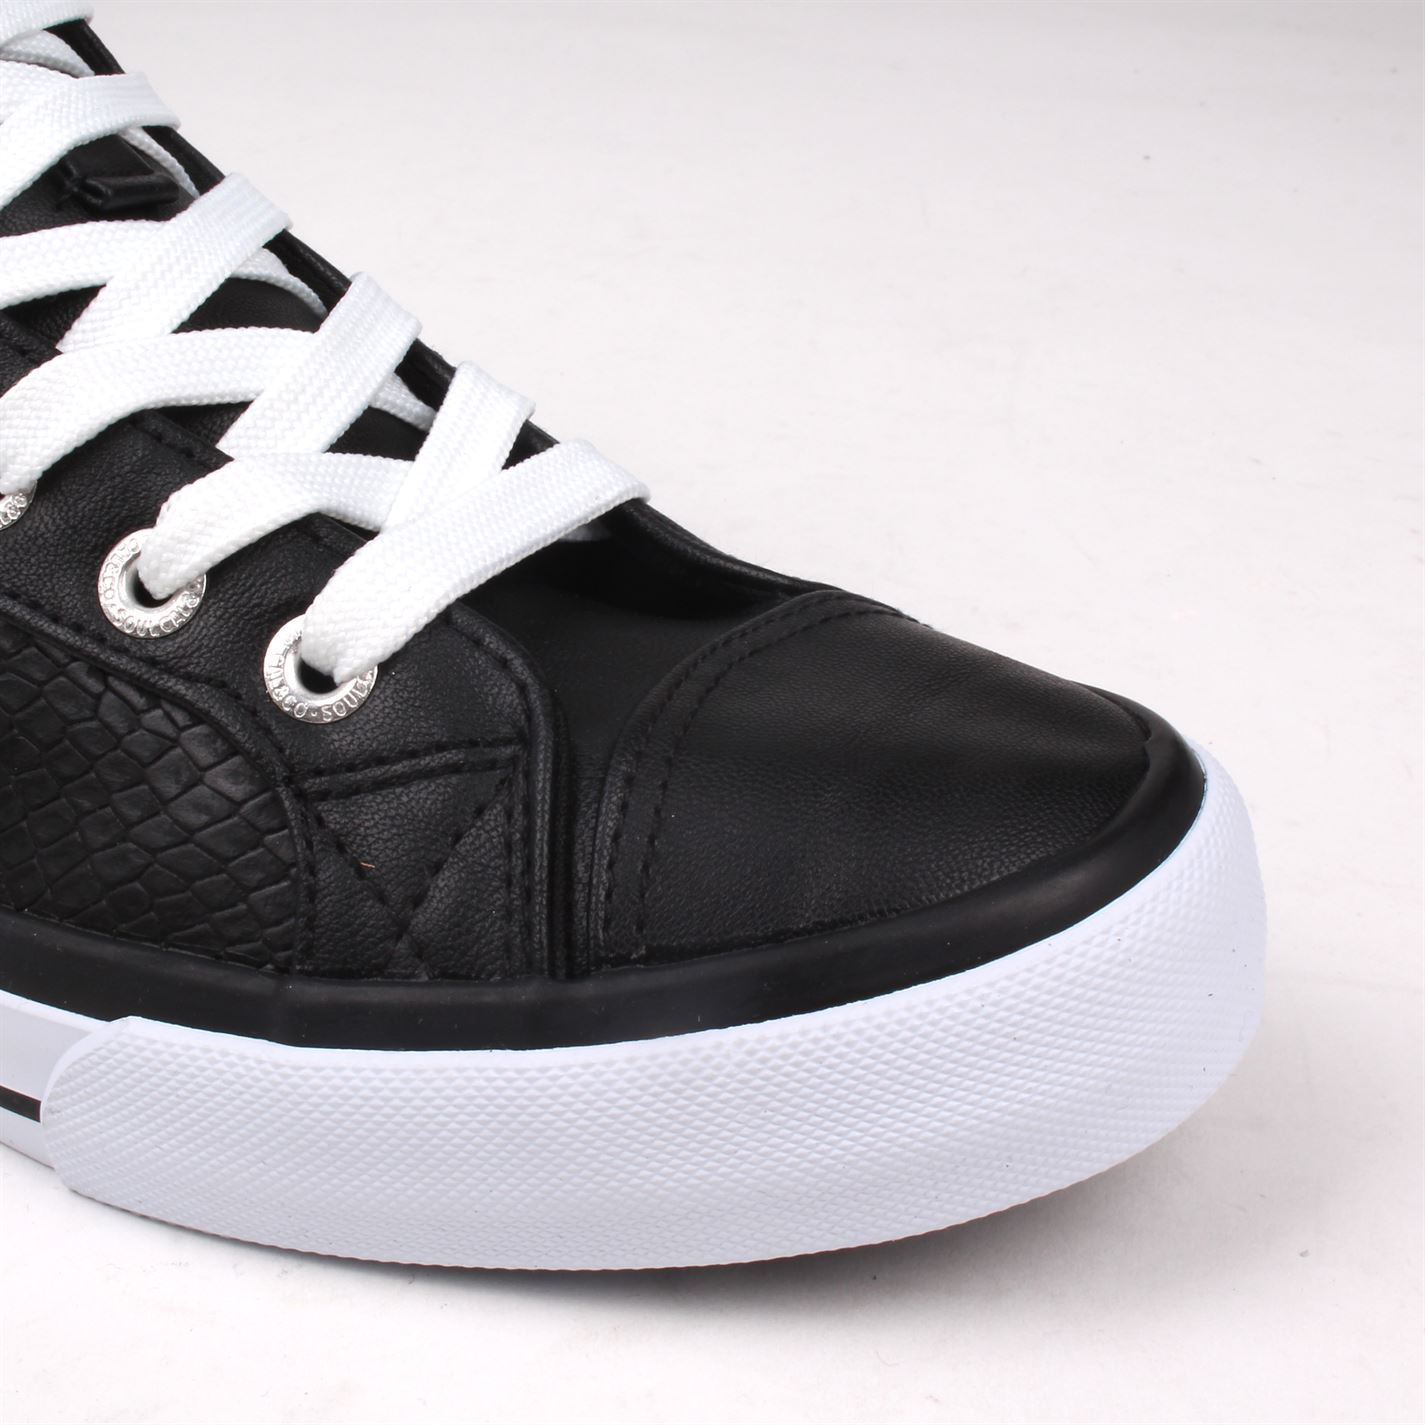 561a1a0a204 Details about SoulCal Asti Hi Tops Trainers PU Womens